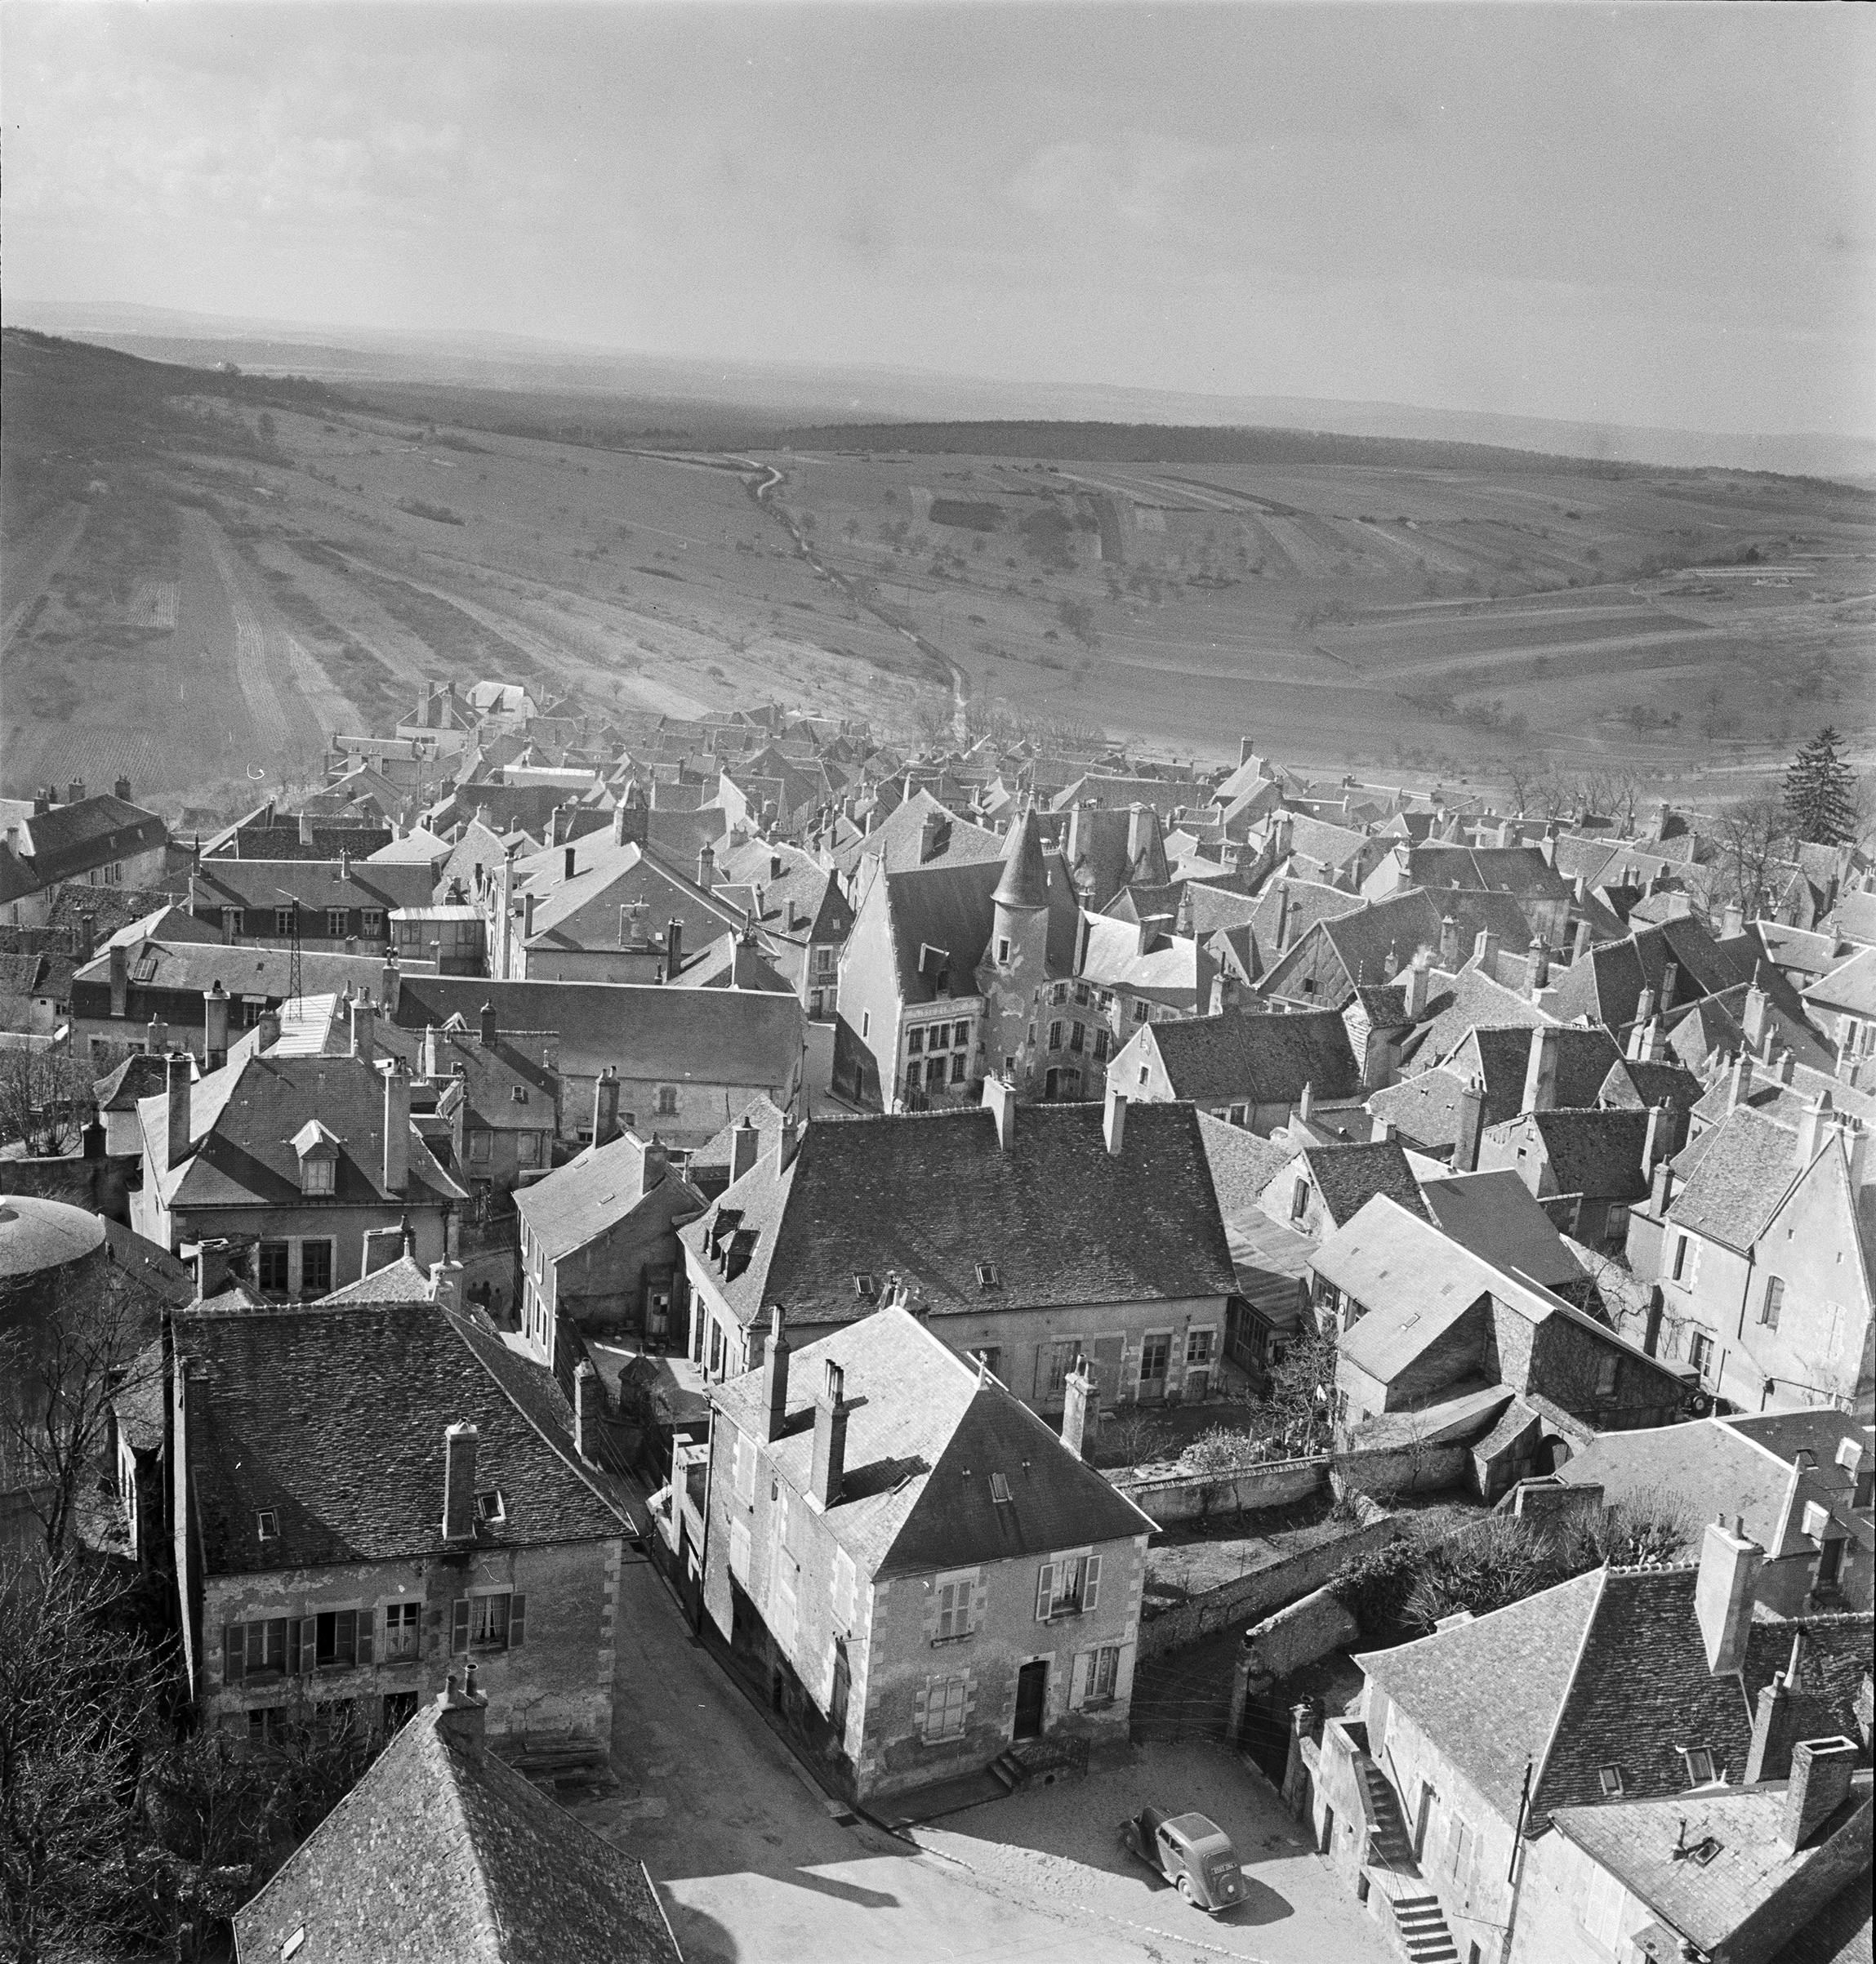 Rooftops of Sancerre from tower just before the snow, 1951.